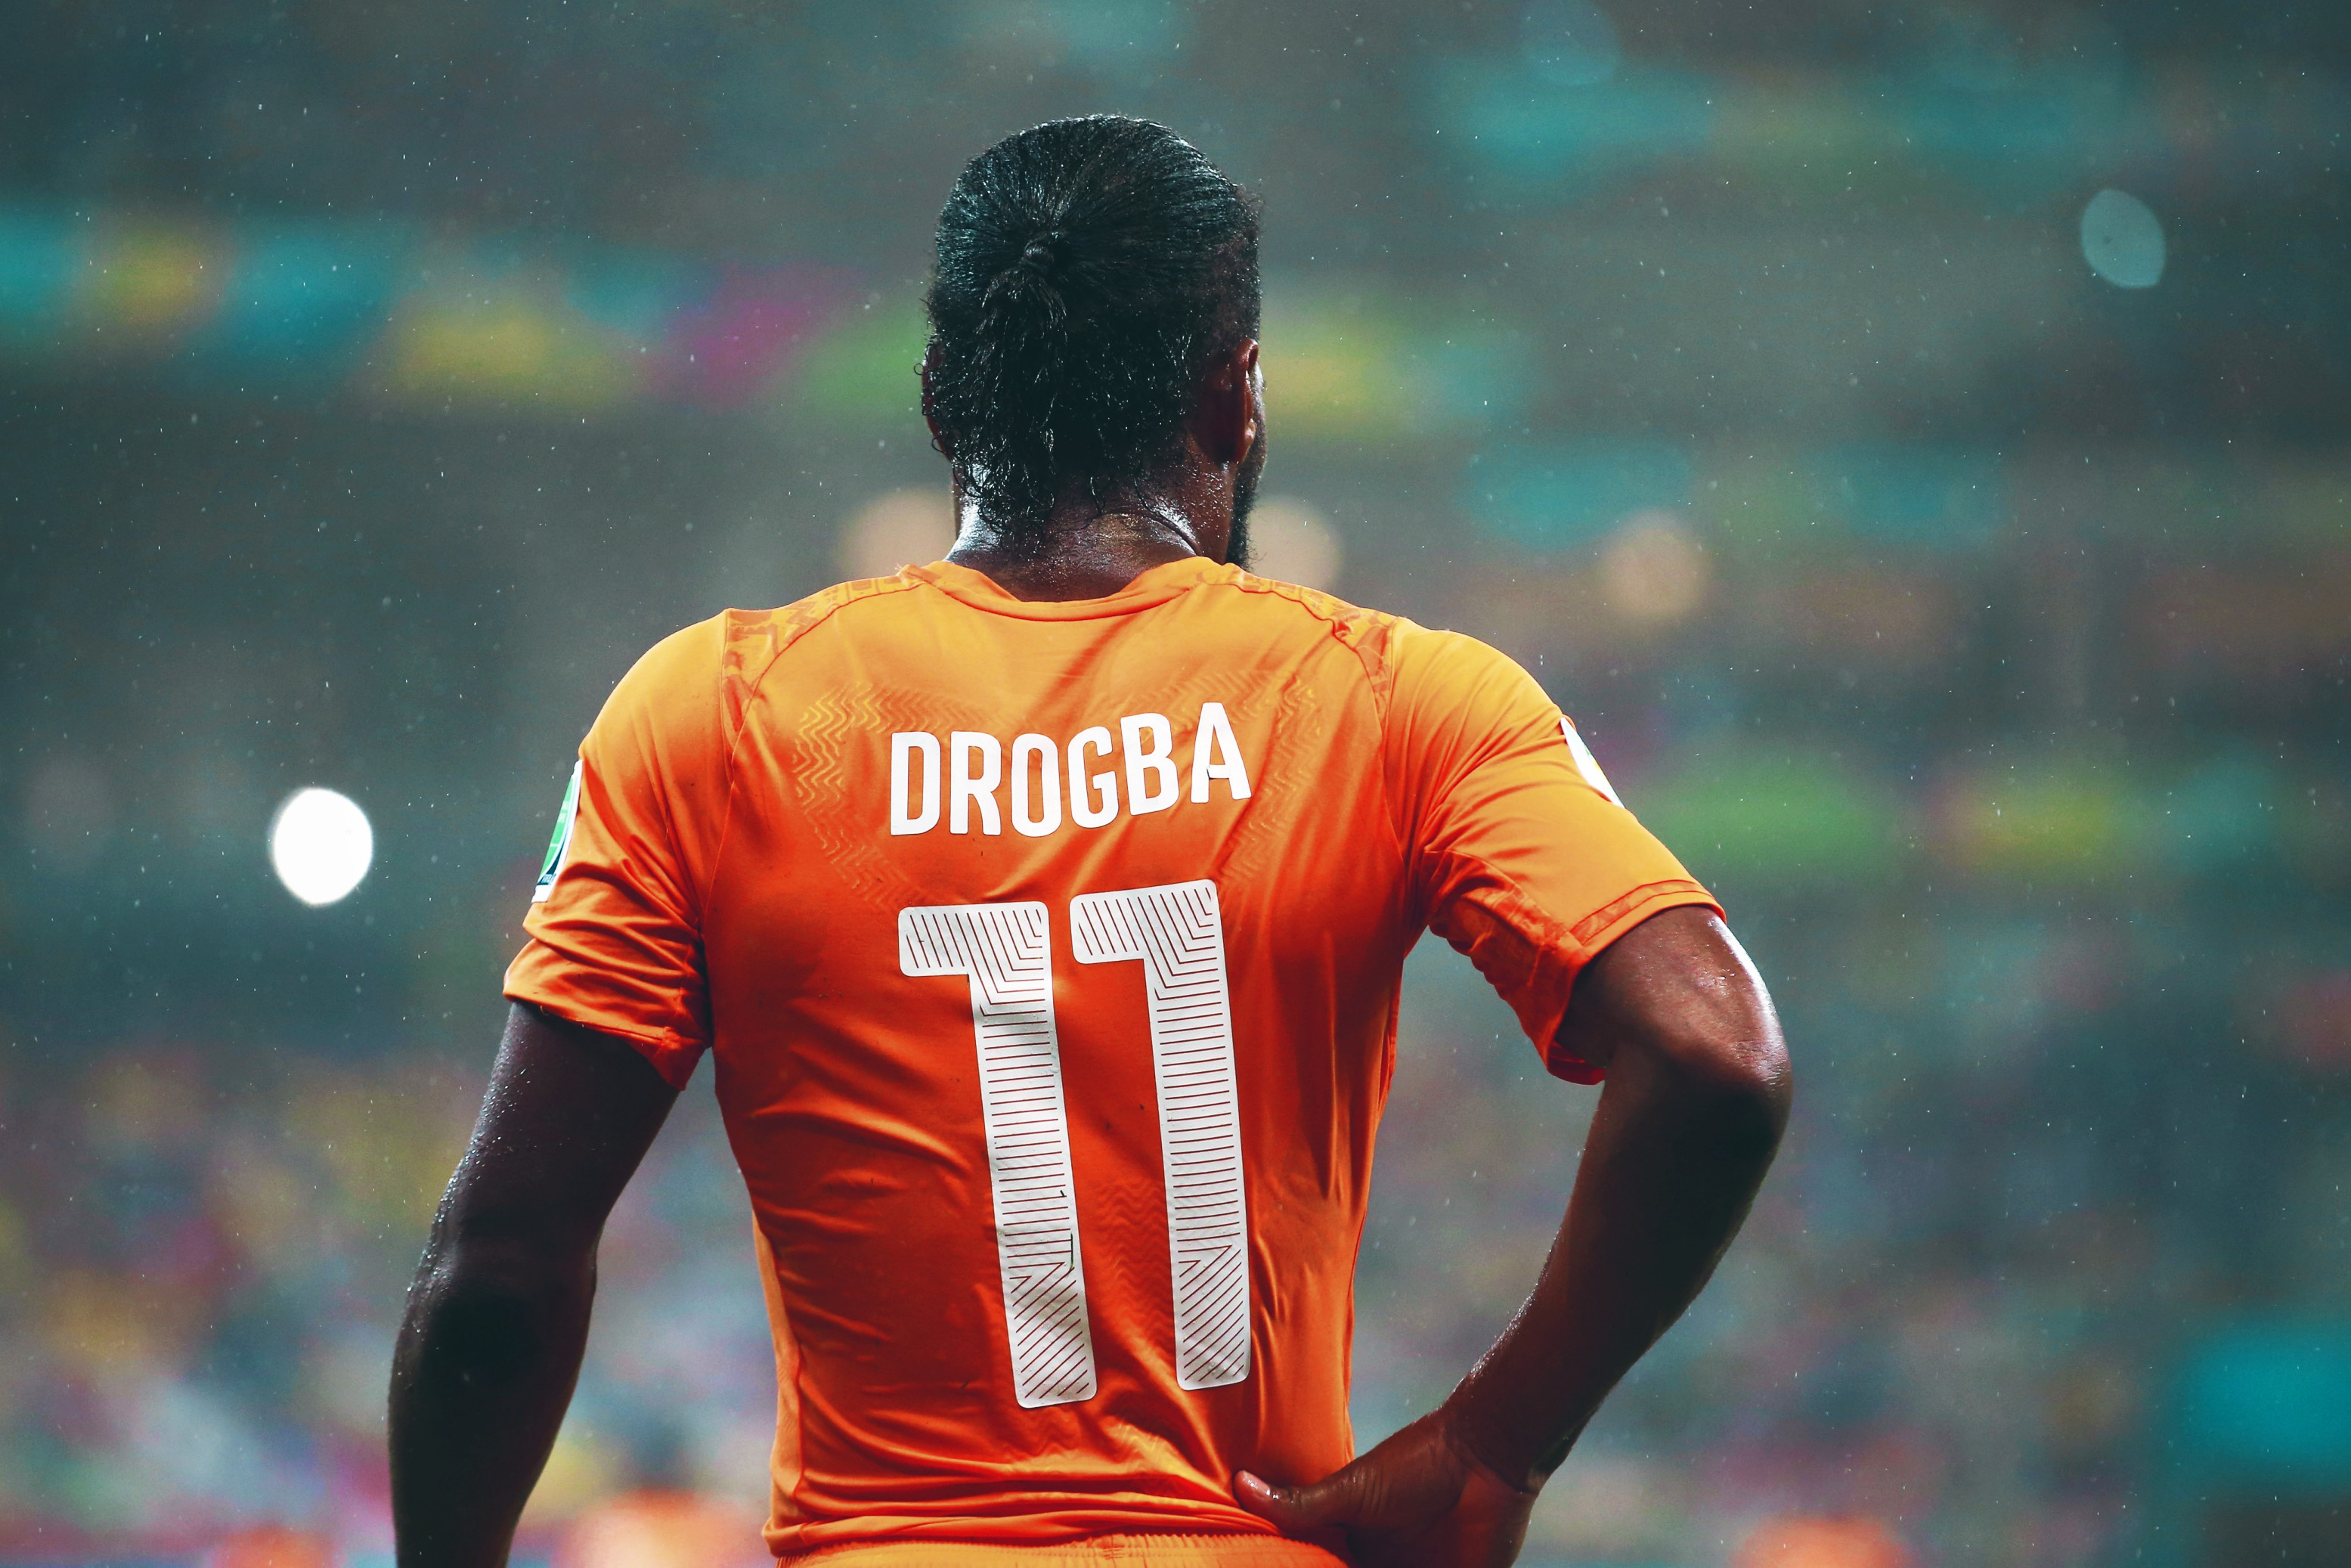 DROGBA DEMANDS PEACEFUL IVORY COAST